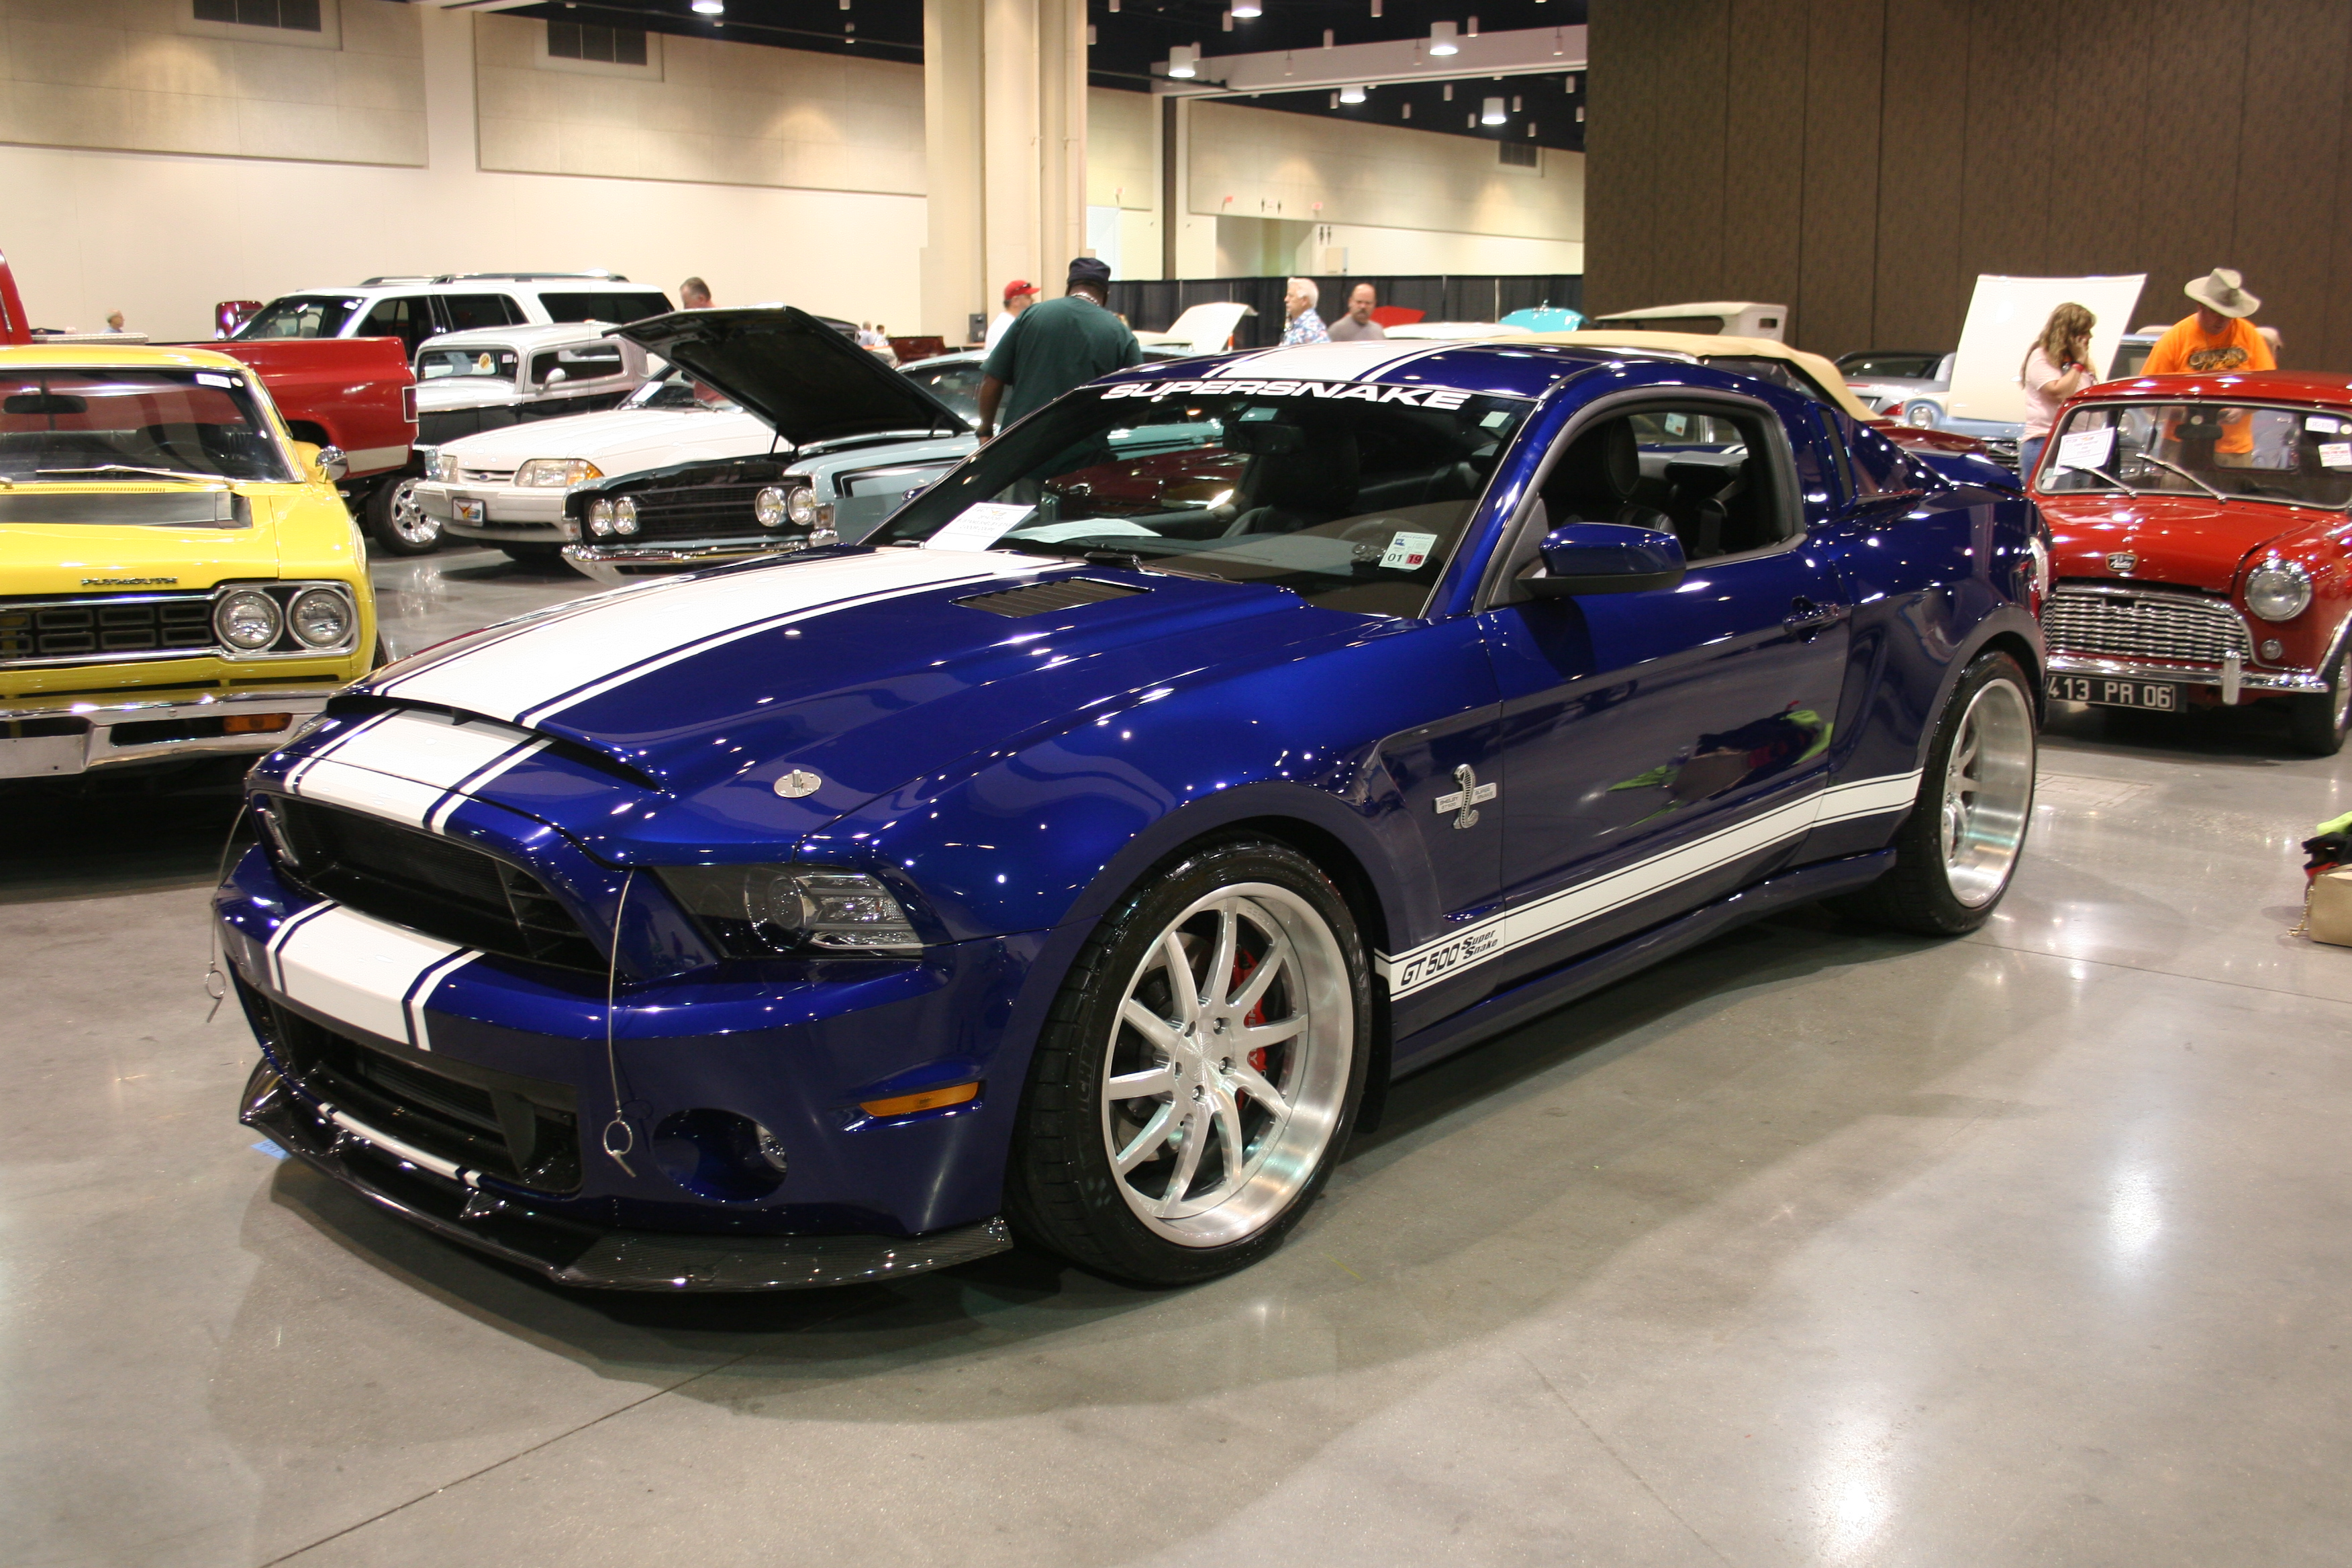 2014 Ford Mustang Shelby Gt500 For Sale At Vicari Auctions Biloxi 2017